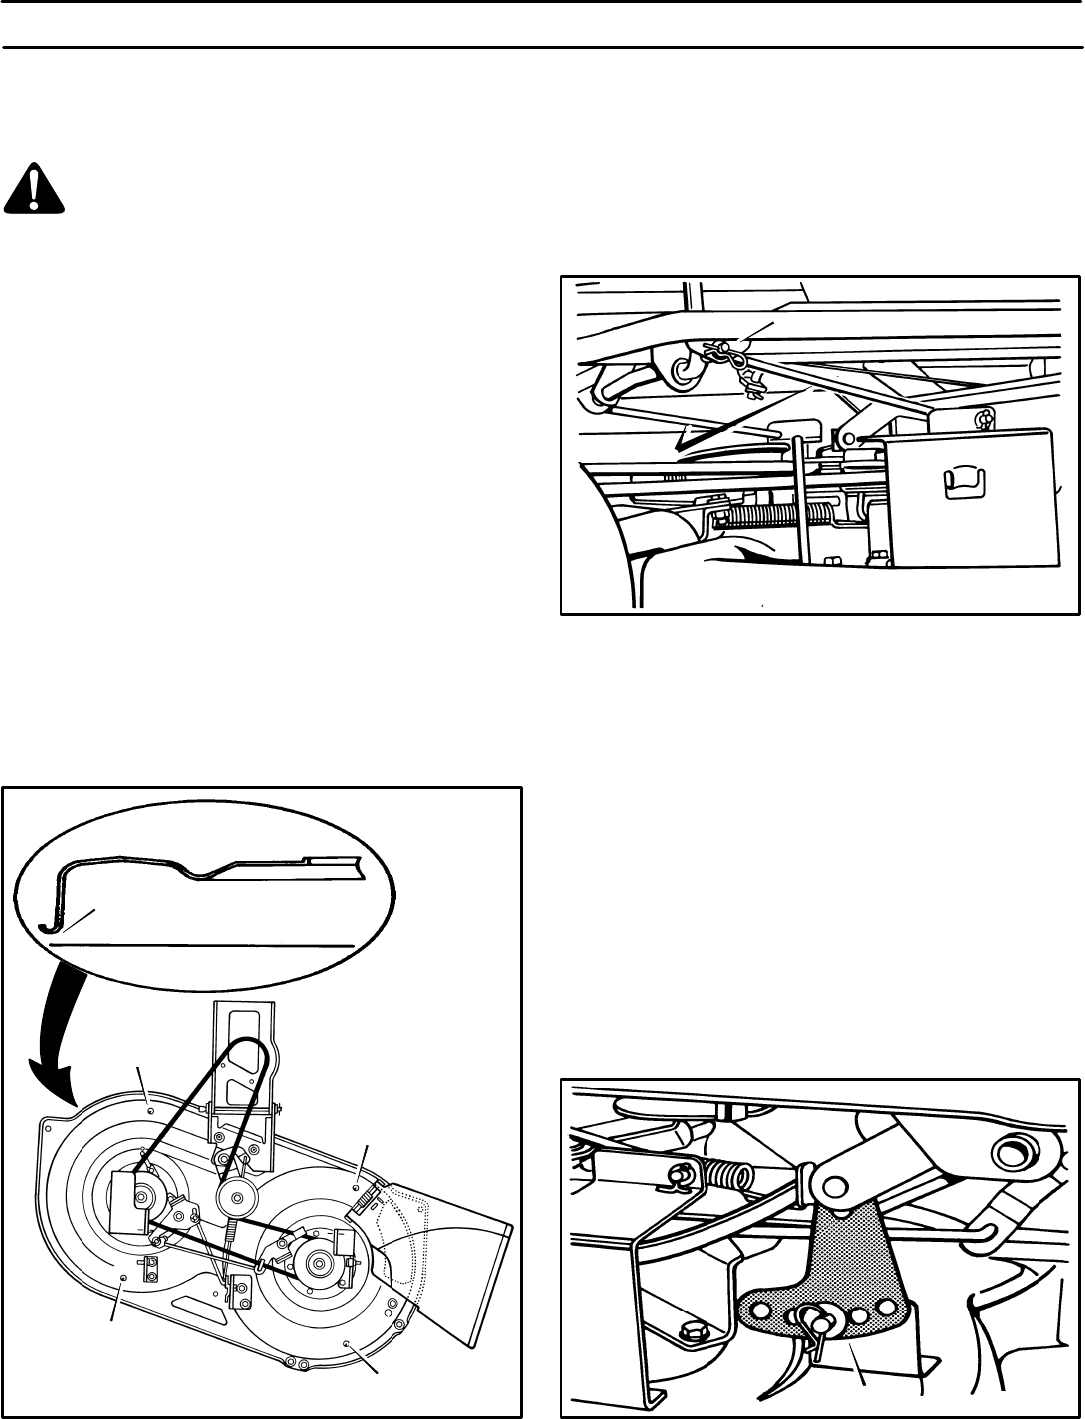 Page 27 of Murray Lawn Mower 387002x92A User Guide